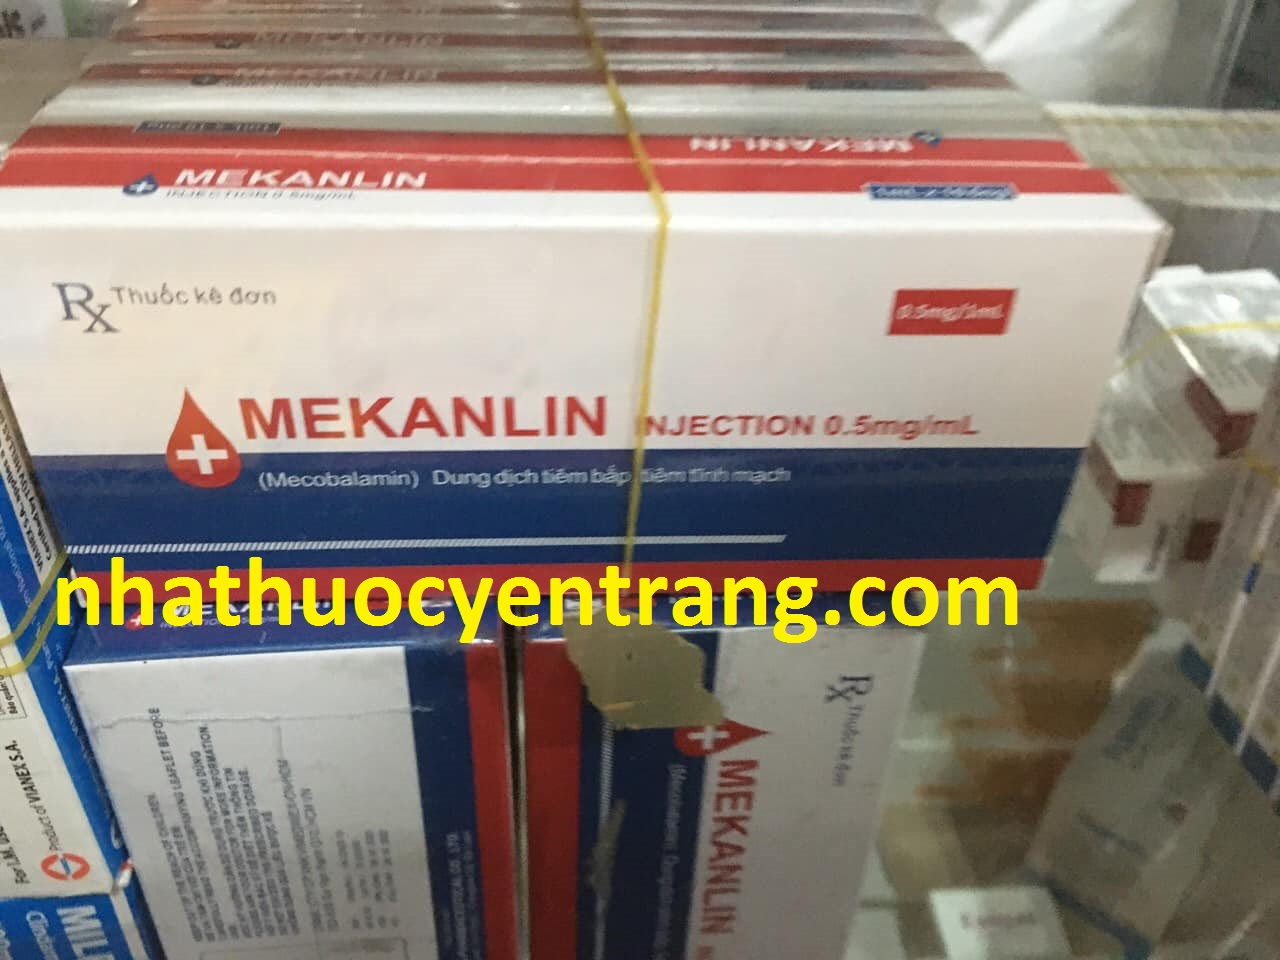 Mekanlin 0.5mg/ml